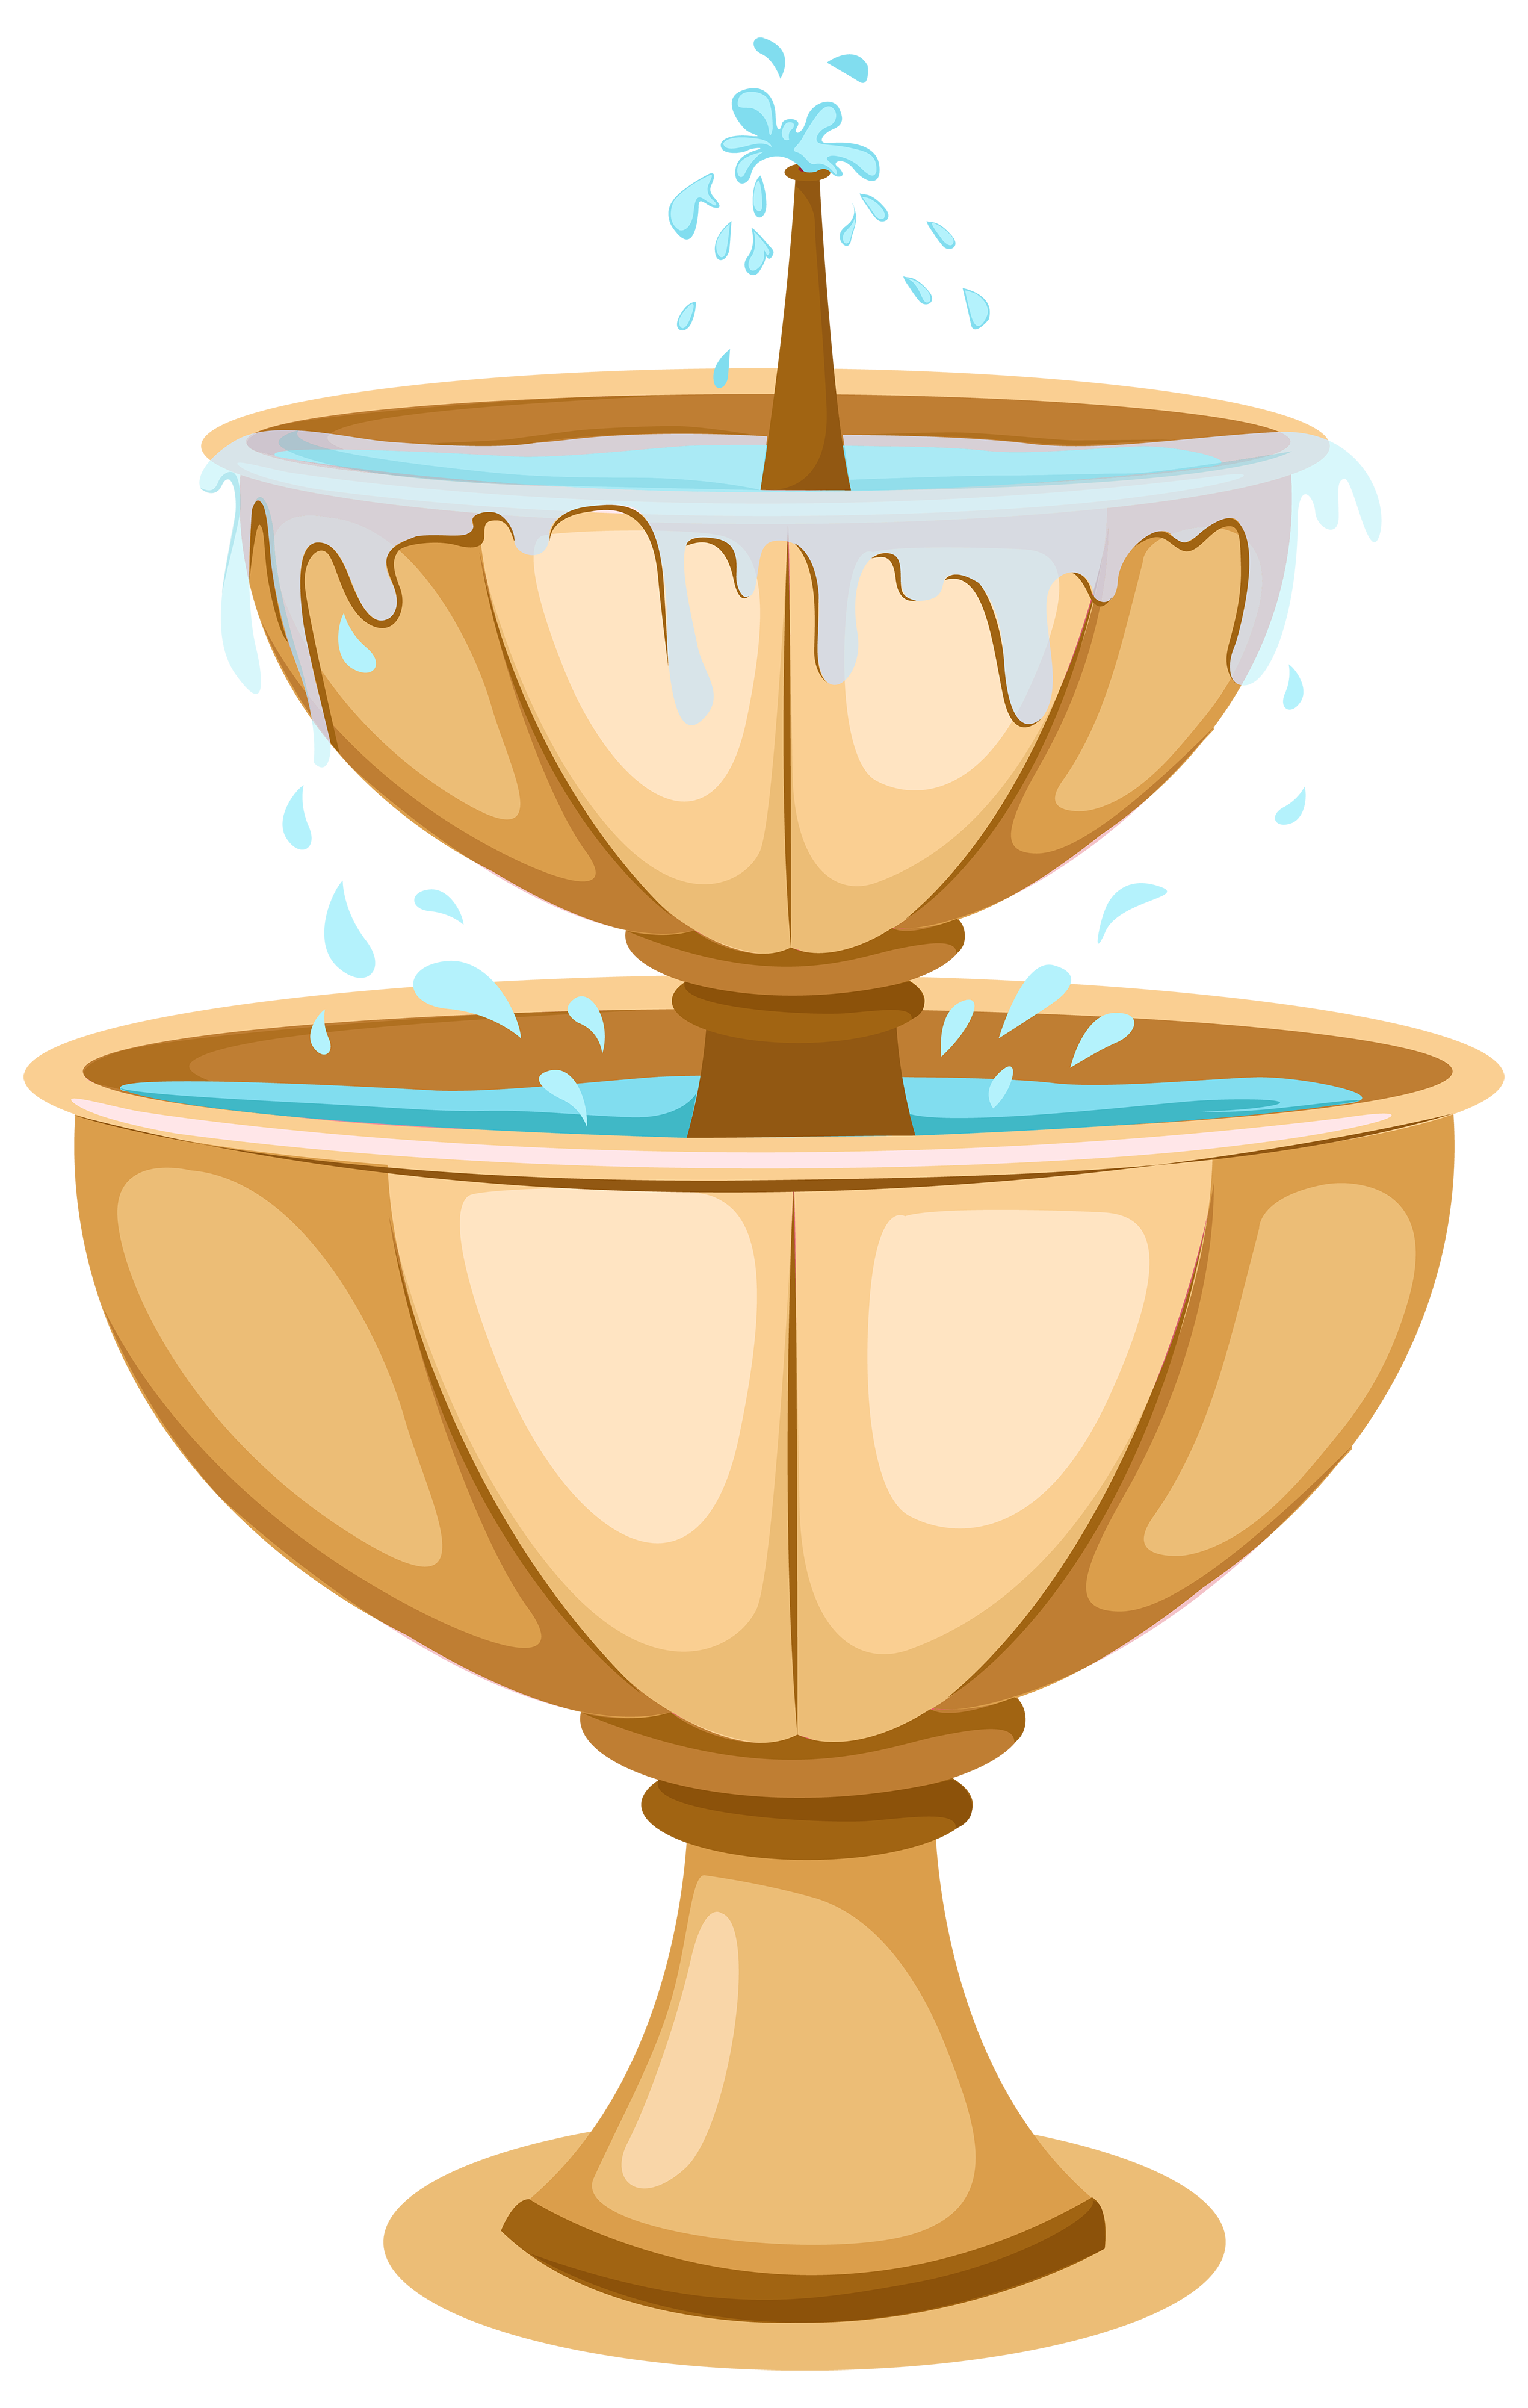 Bowl with money under it clipart svg royalty free download Garden Fountain PNG Clipart - Best WEB Clipart svg royalty free download